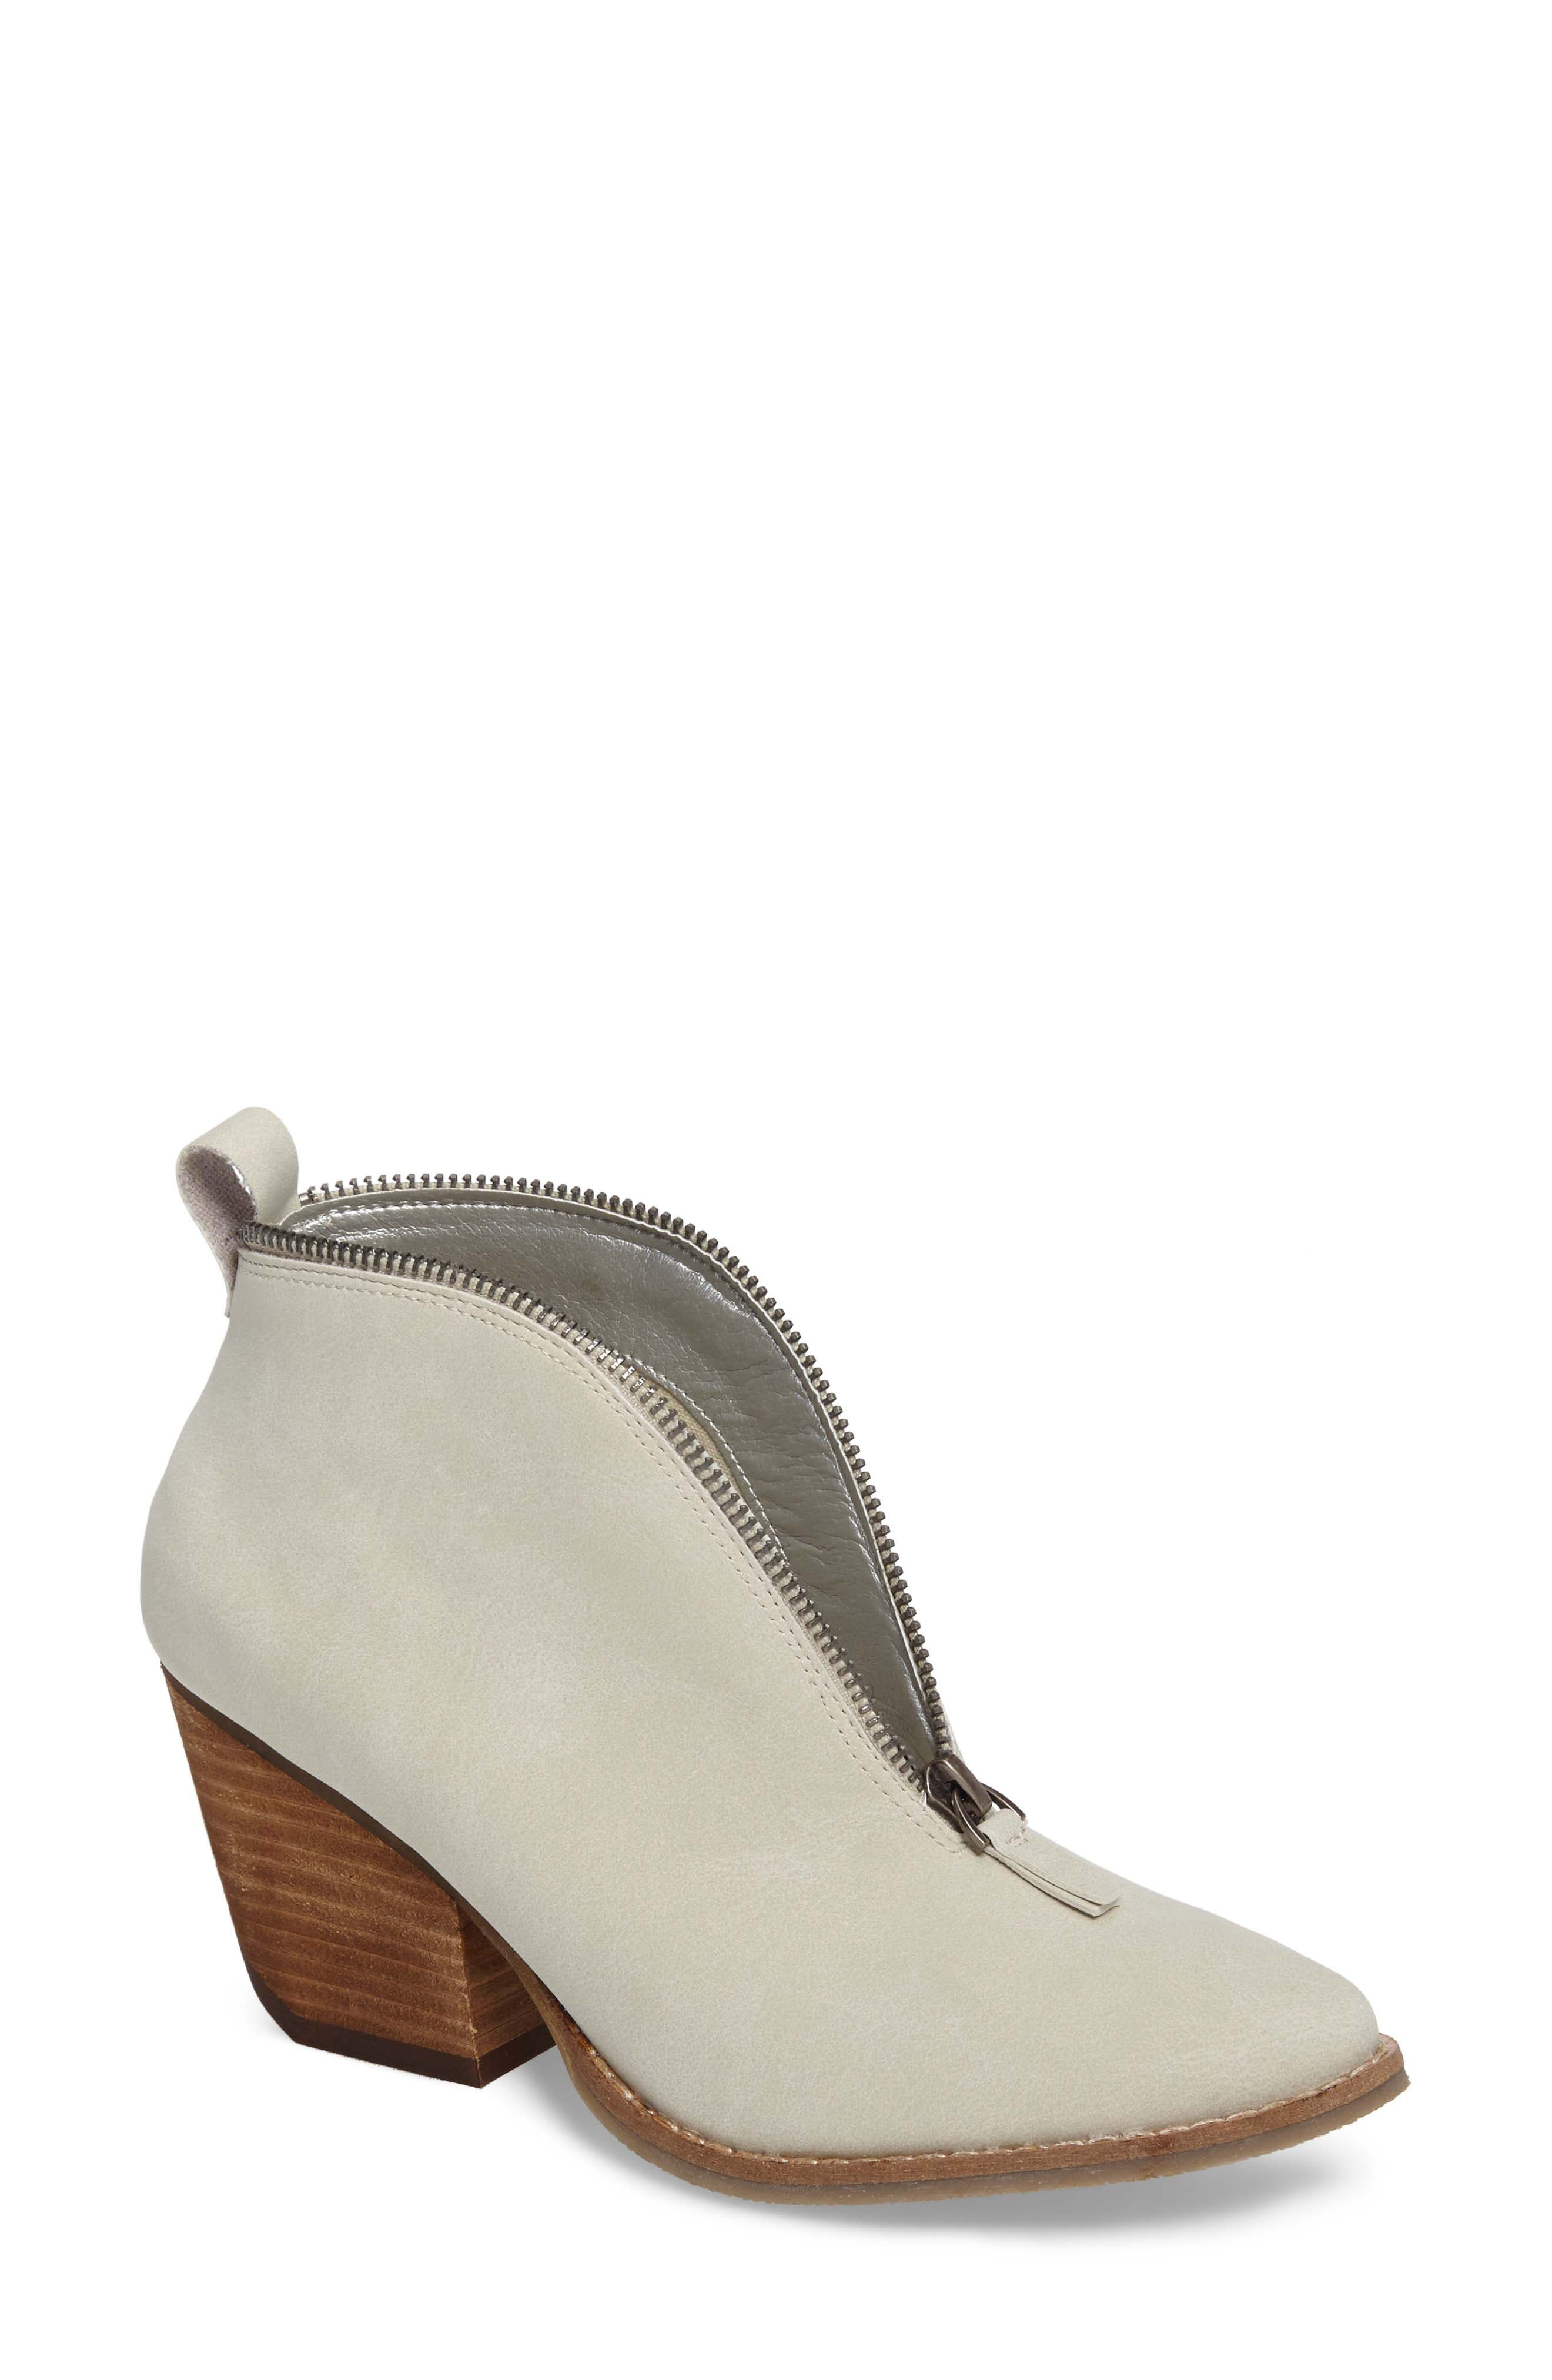 COCONUTS BY MATISSE Alive Bootie